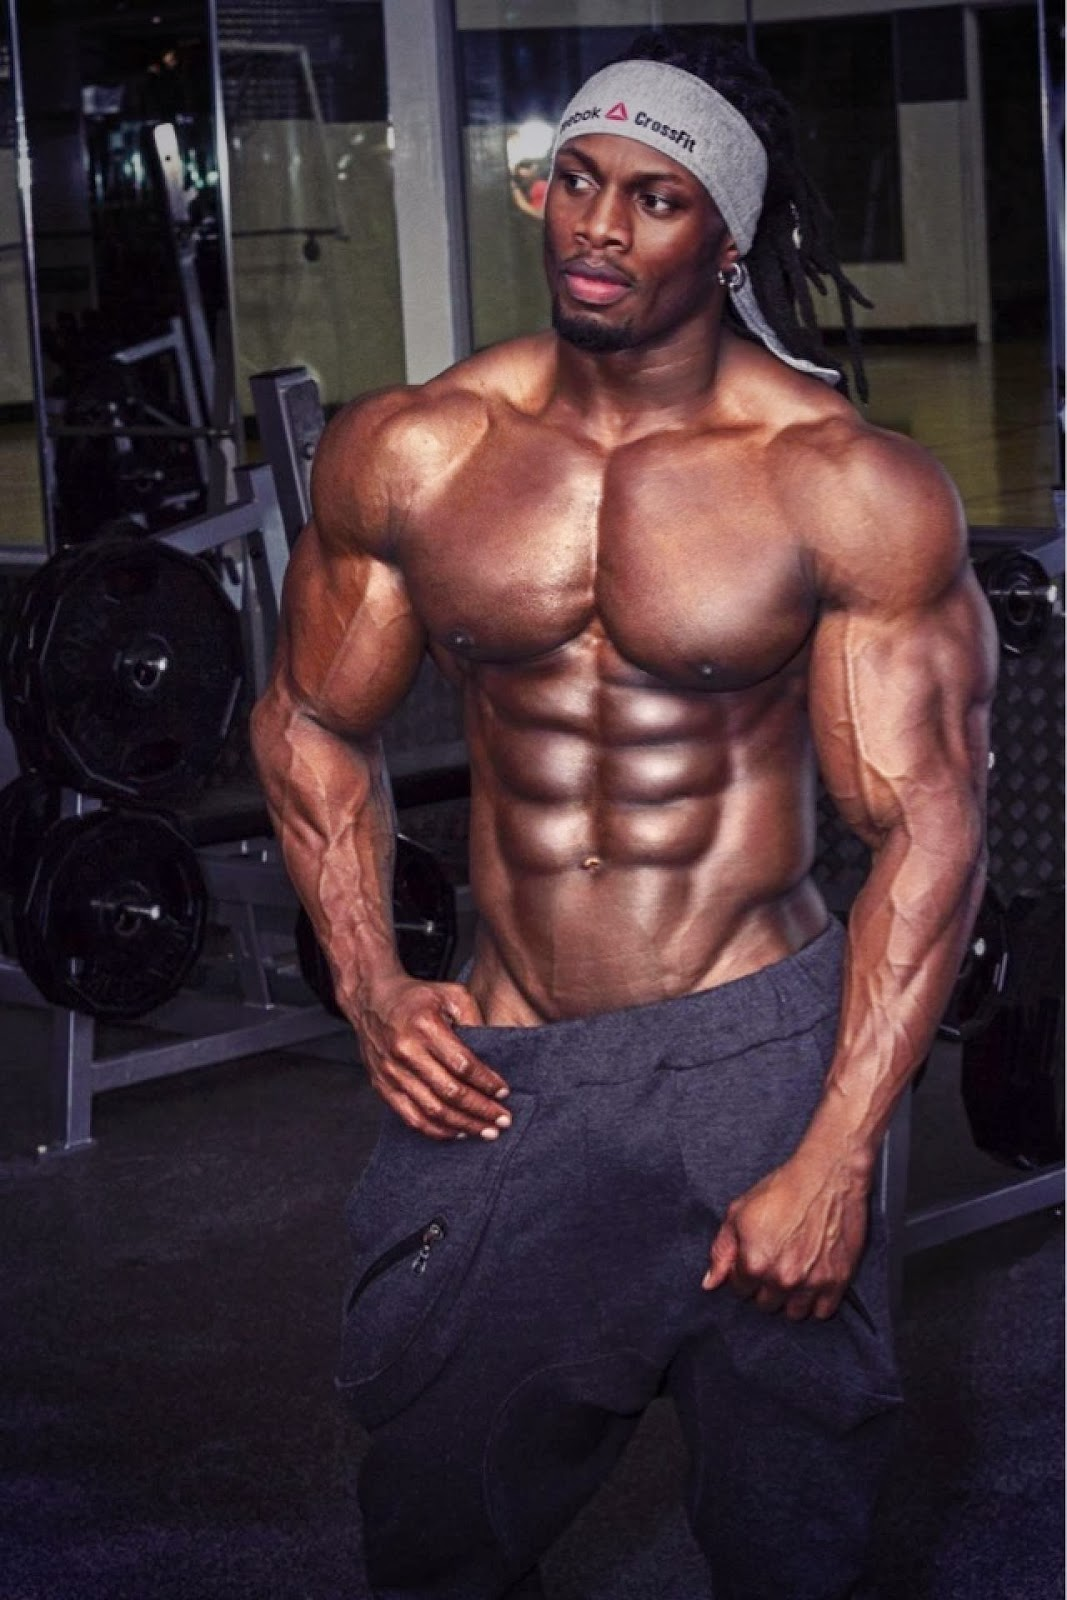 Ulisses-Jr-Male-Fitness-Model+(7).jpg